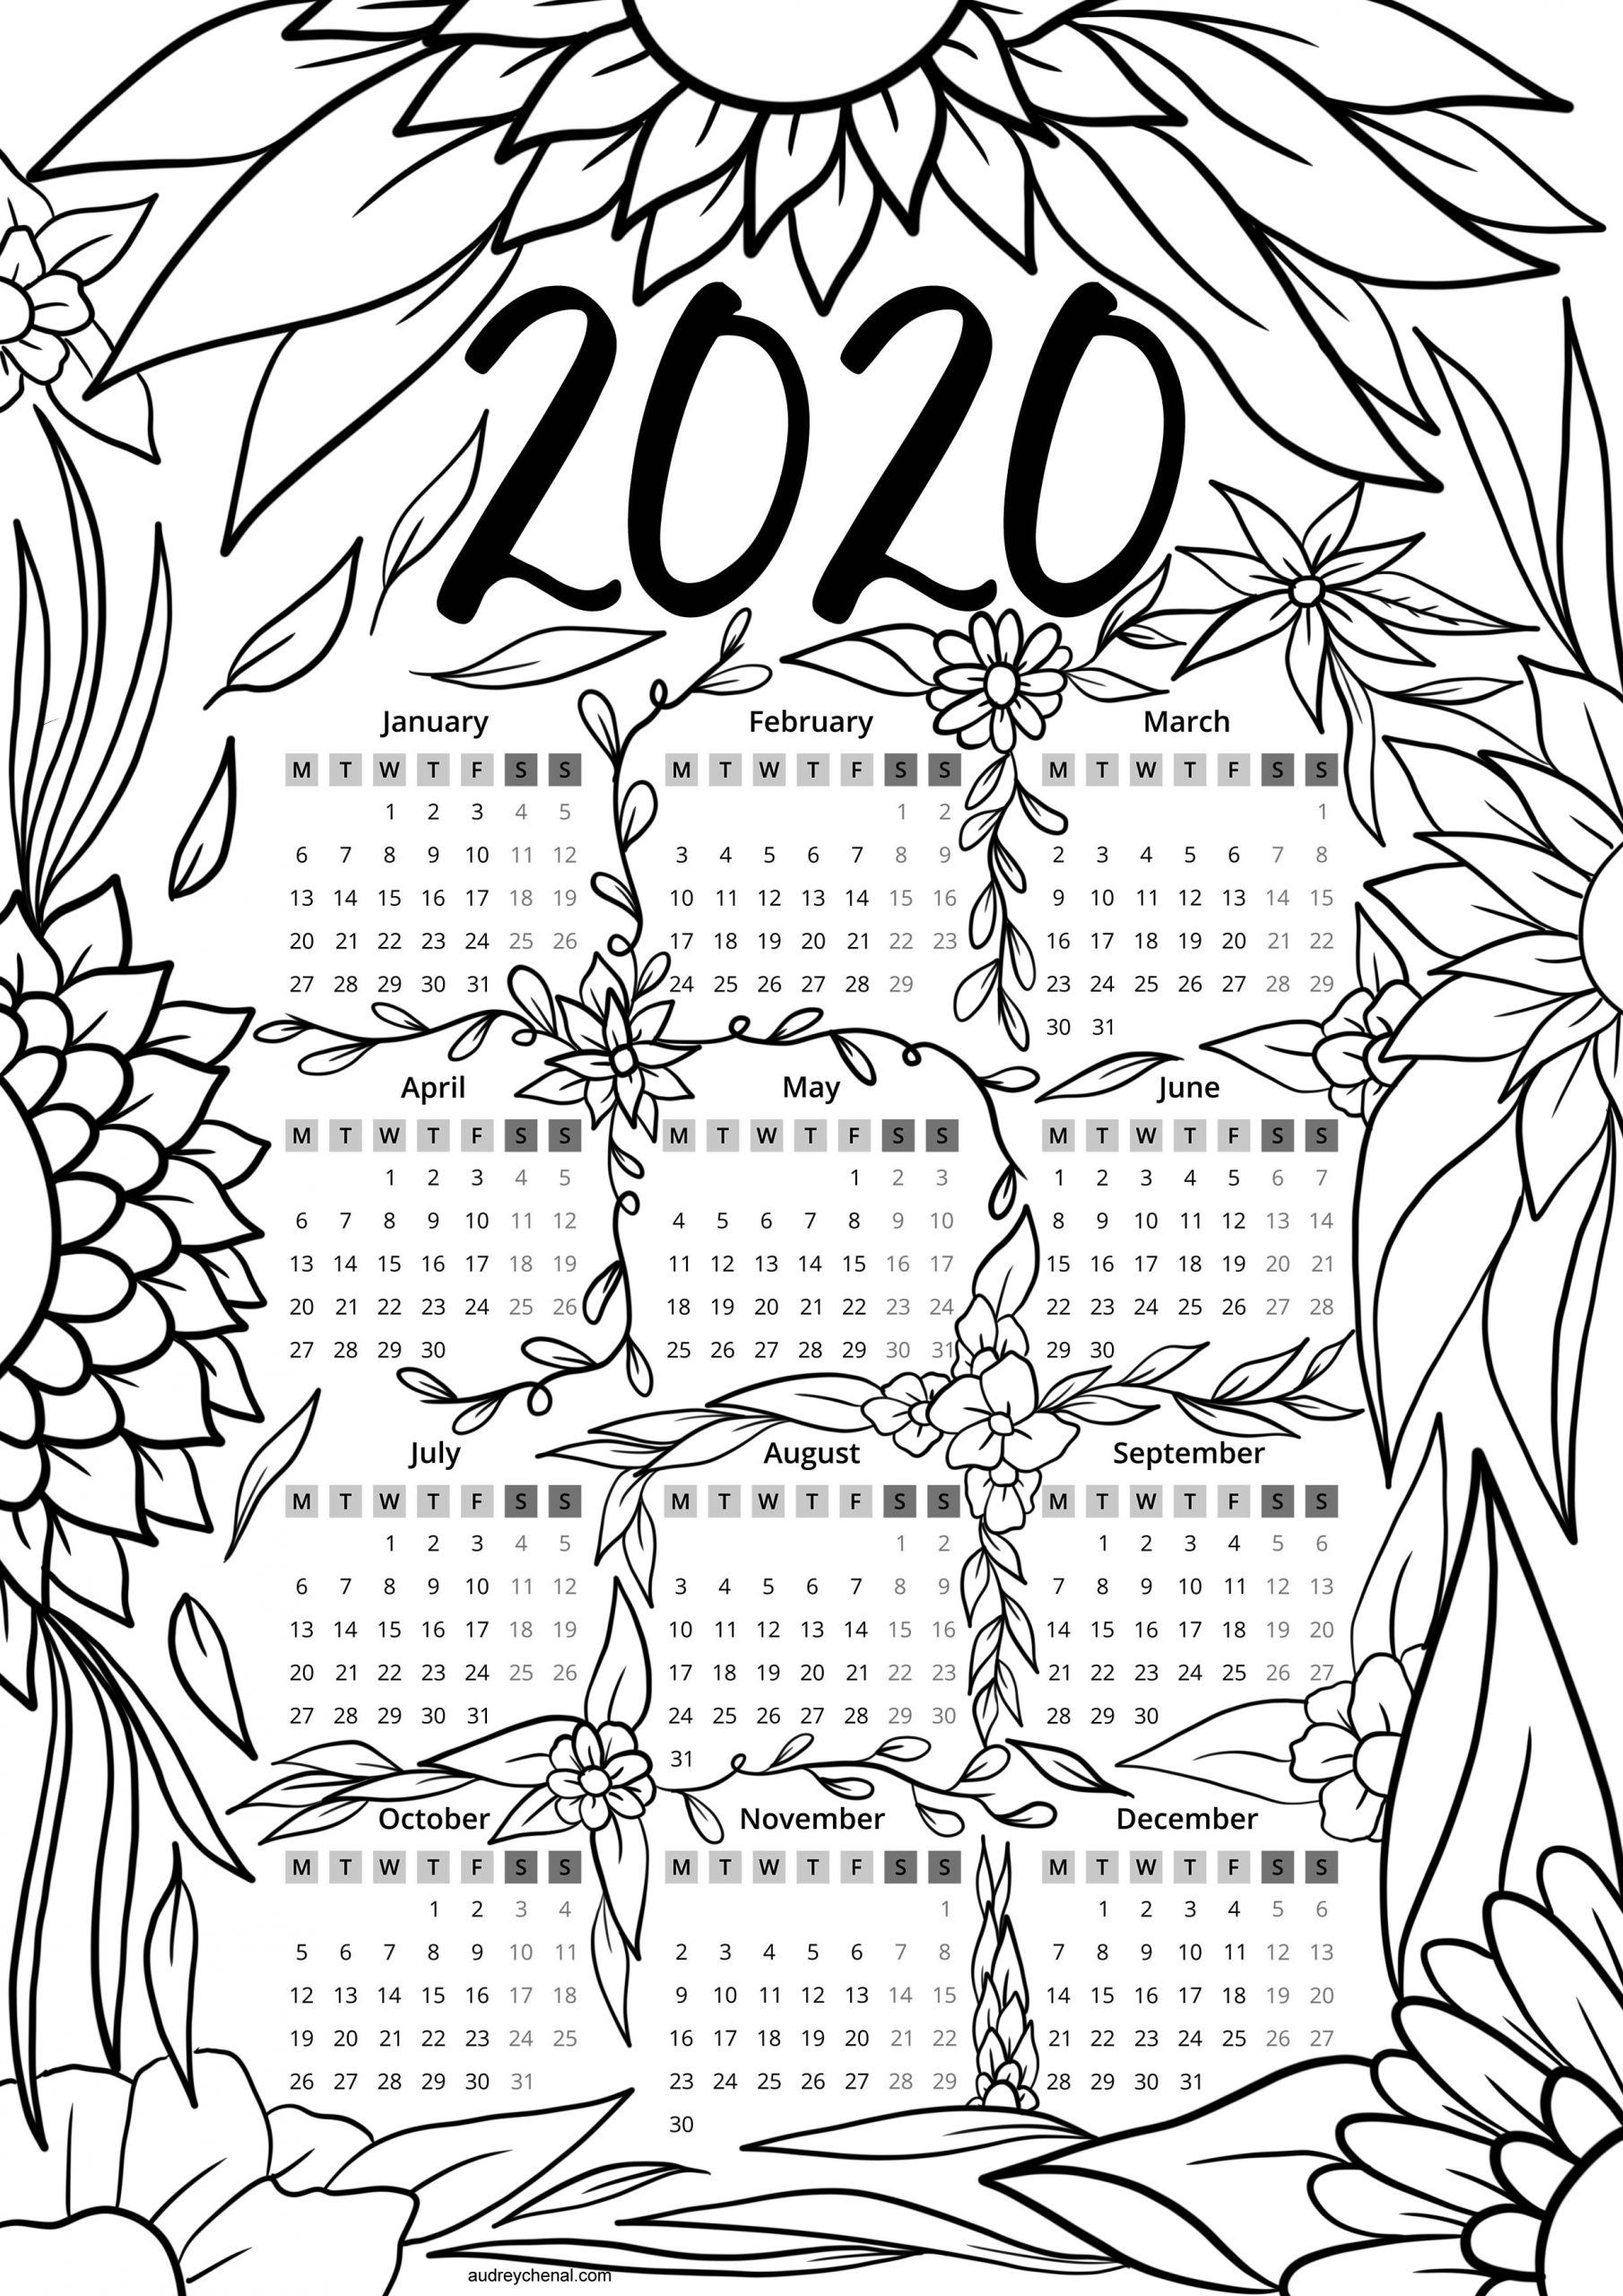 Free 2020 Calendar Adult Coloring Page Instant Digital Download intended for Adult Coloring 2020 Calendar Printable